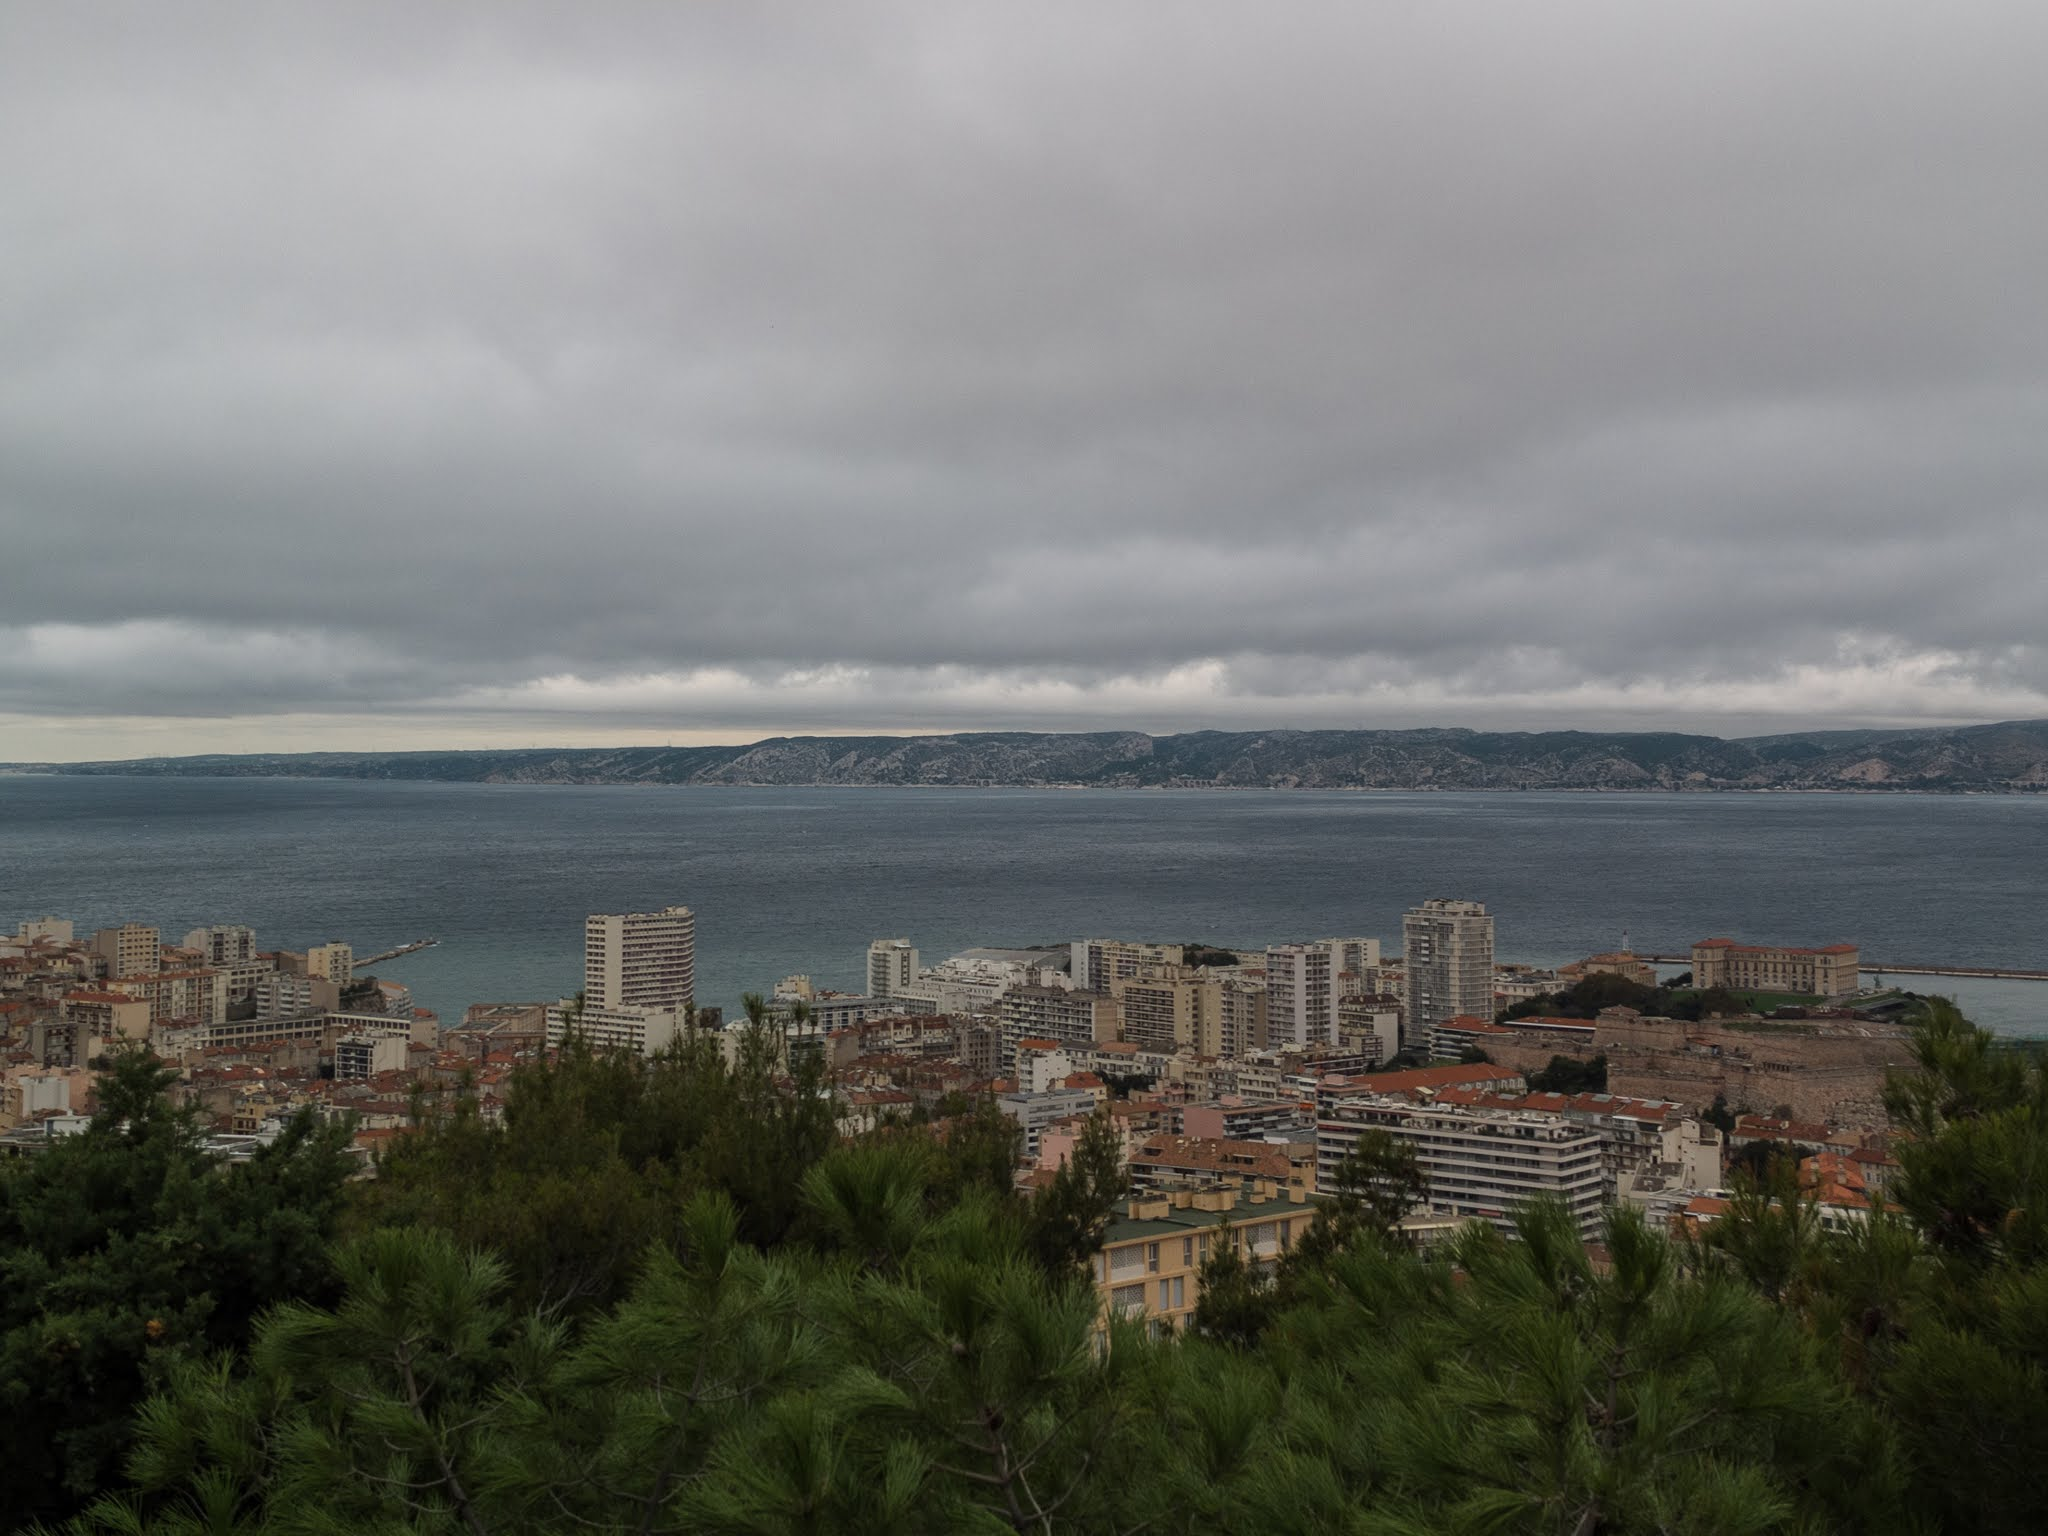 View of Marseille city and harbour from the Basilica of Notre Dame de la Garde.